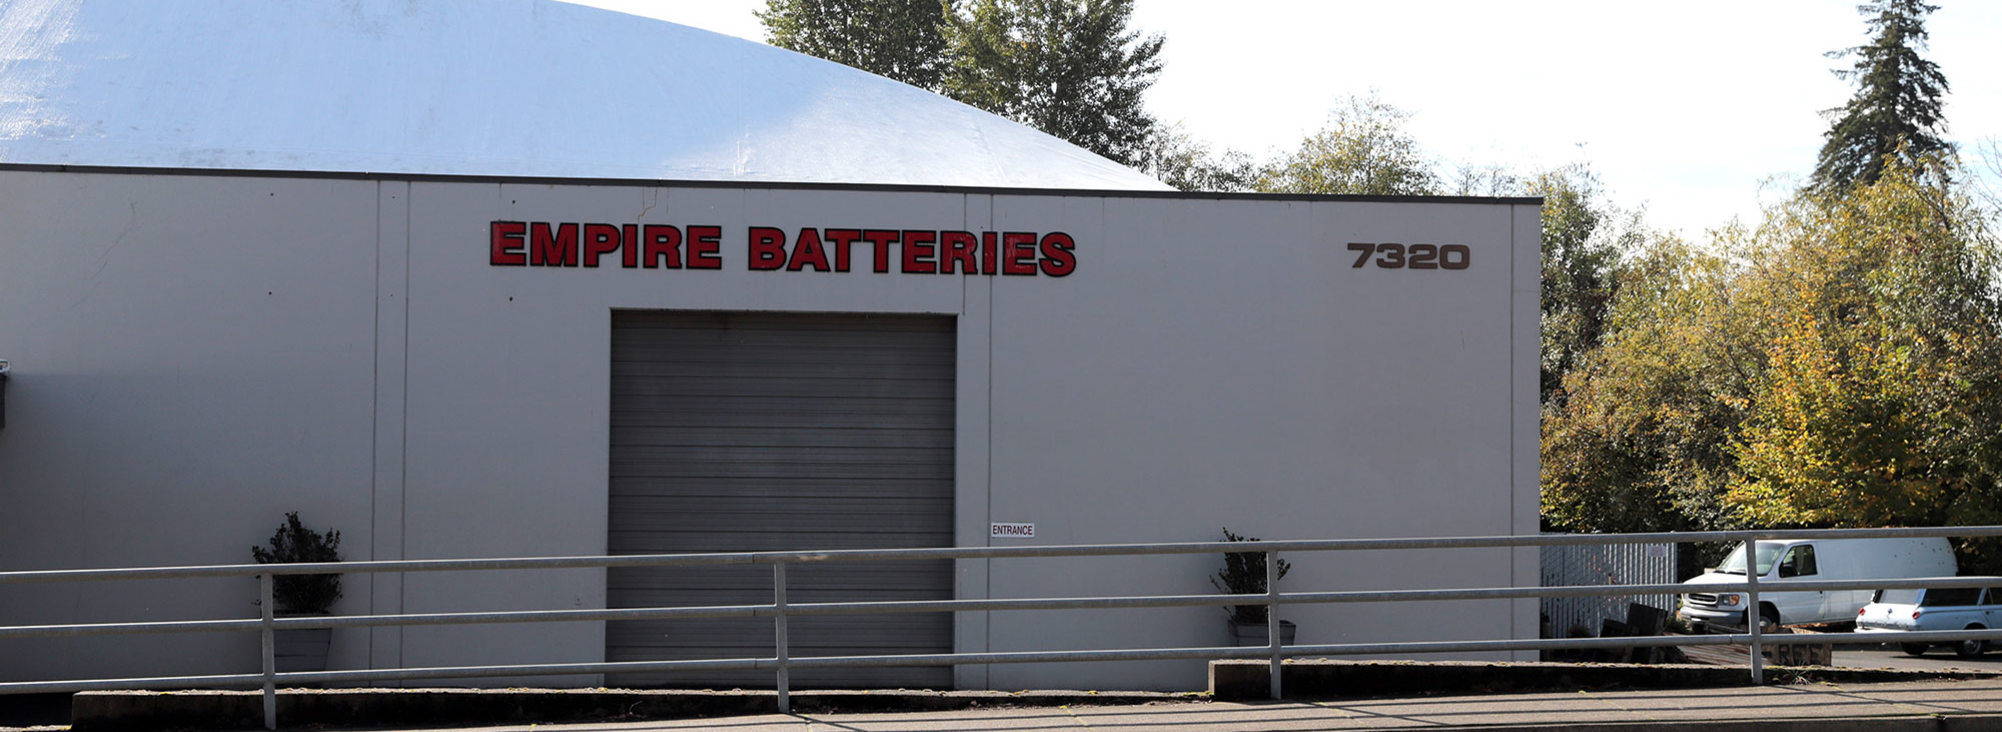 the exterior of the locally-owned business Empire Batteries in Tigard